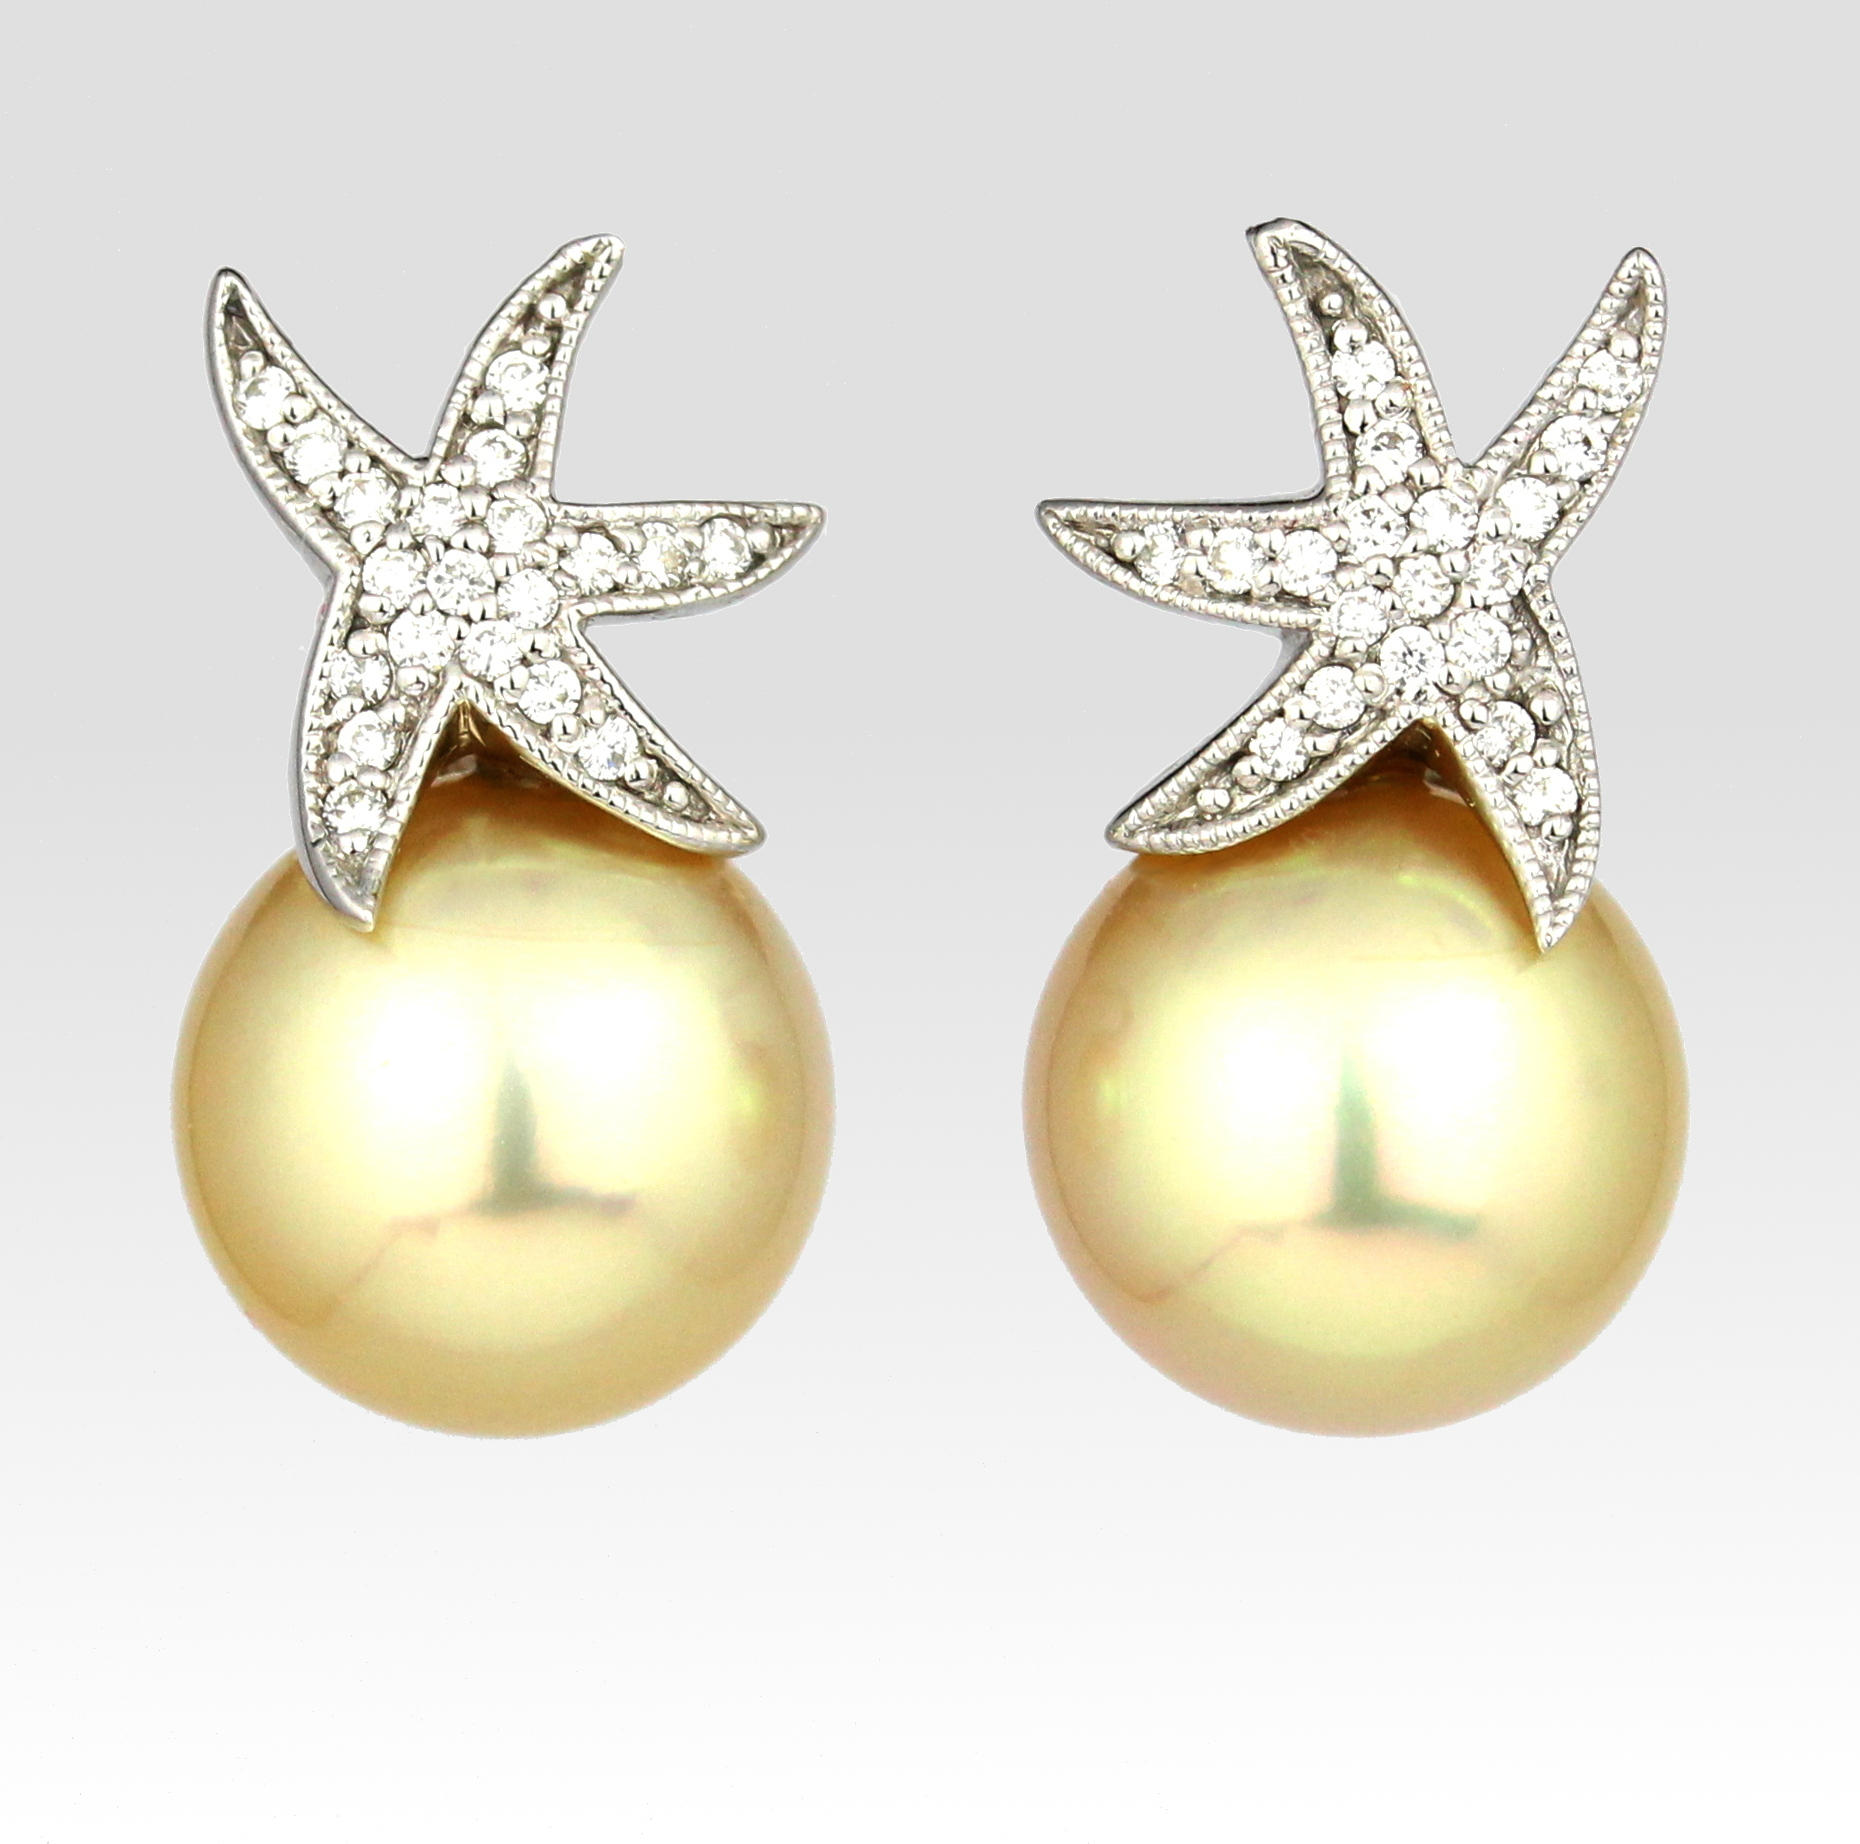 Golden pearls with diamond set white gold starfish studs.